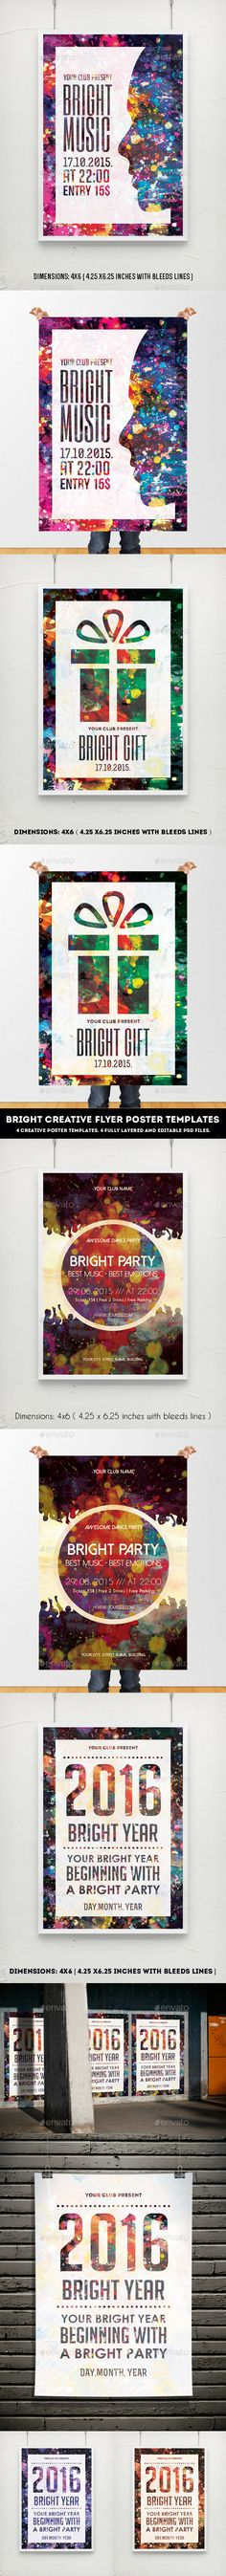 Bright Creative Flyer Poster Template PSD #design Download: http://graphicriver.net/item/bright-creative-flyer-poster-templates/14213880?ref=ksioks